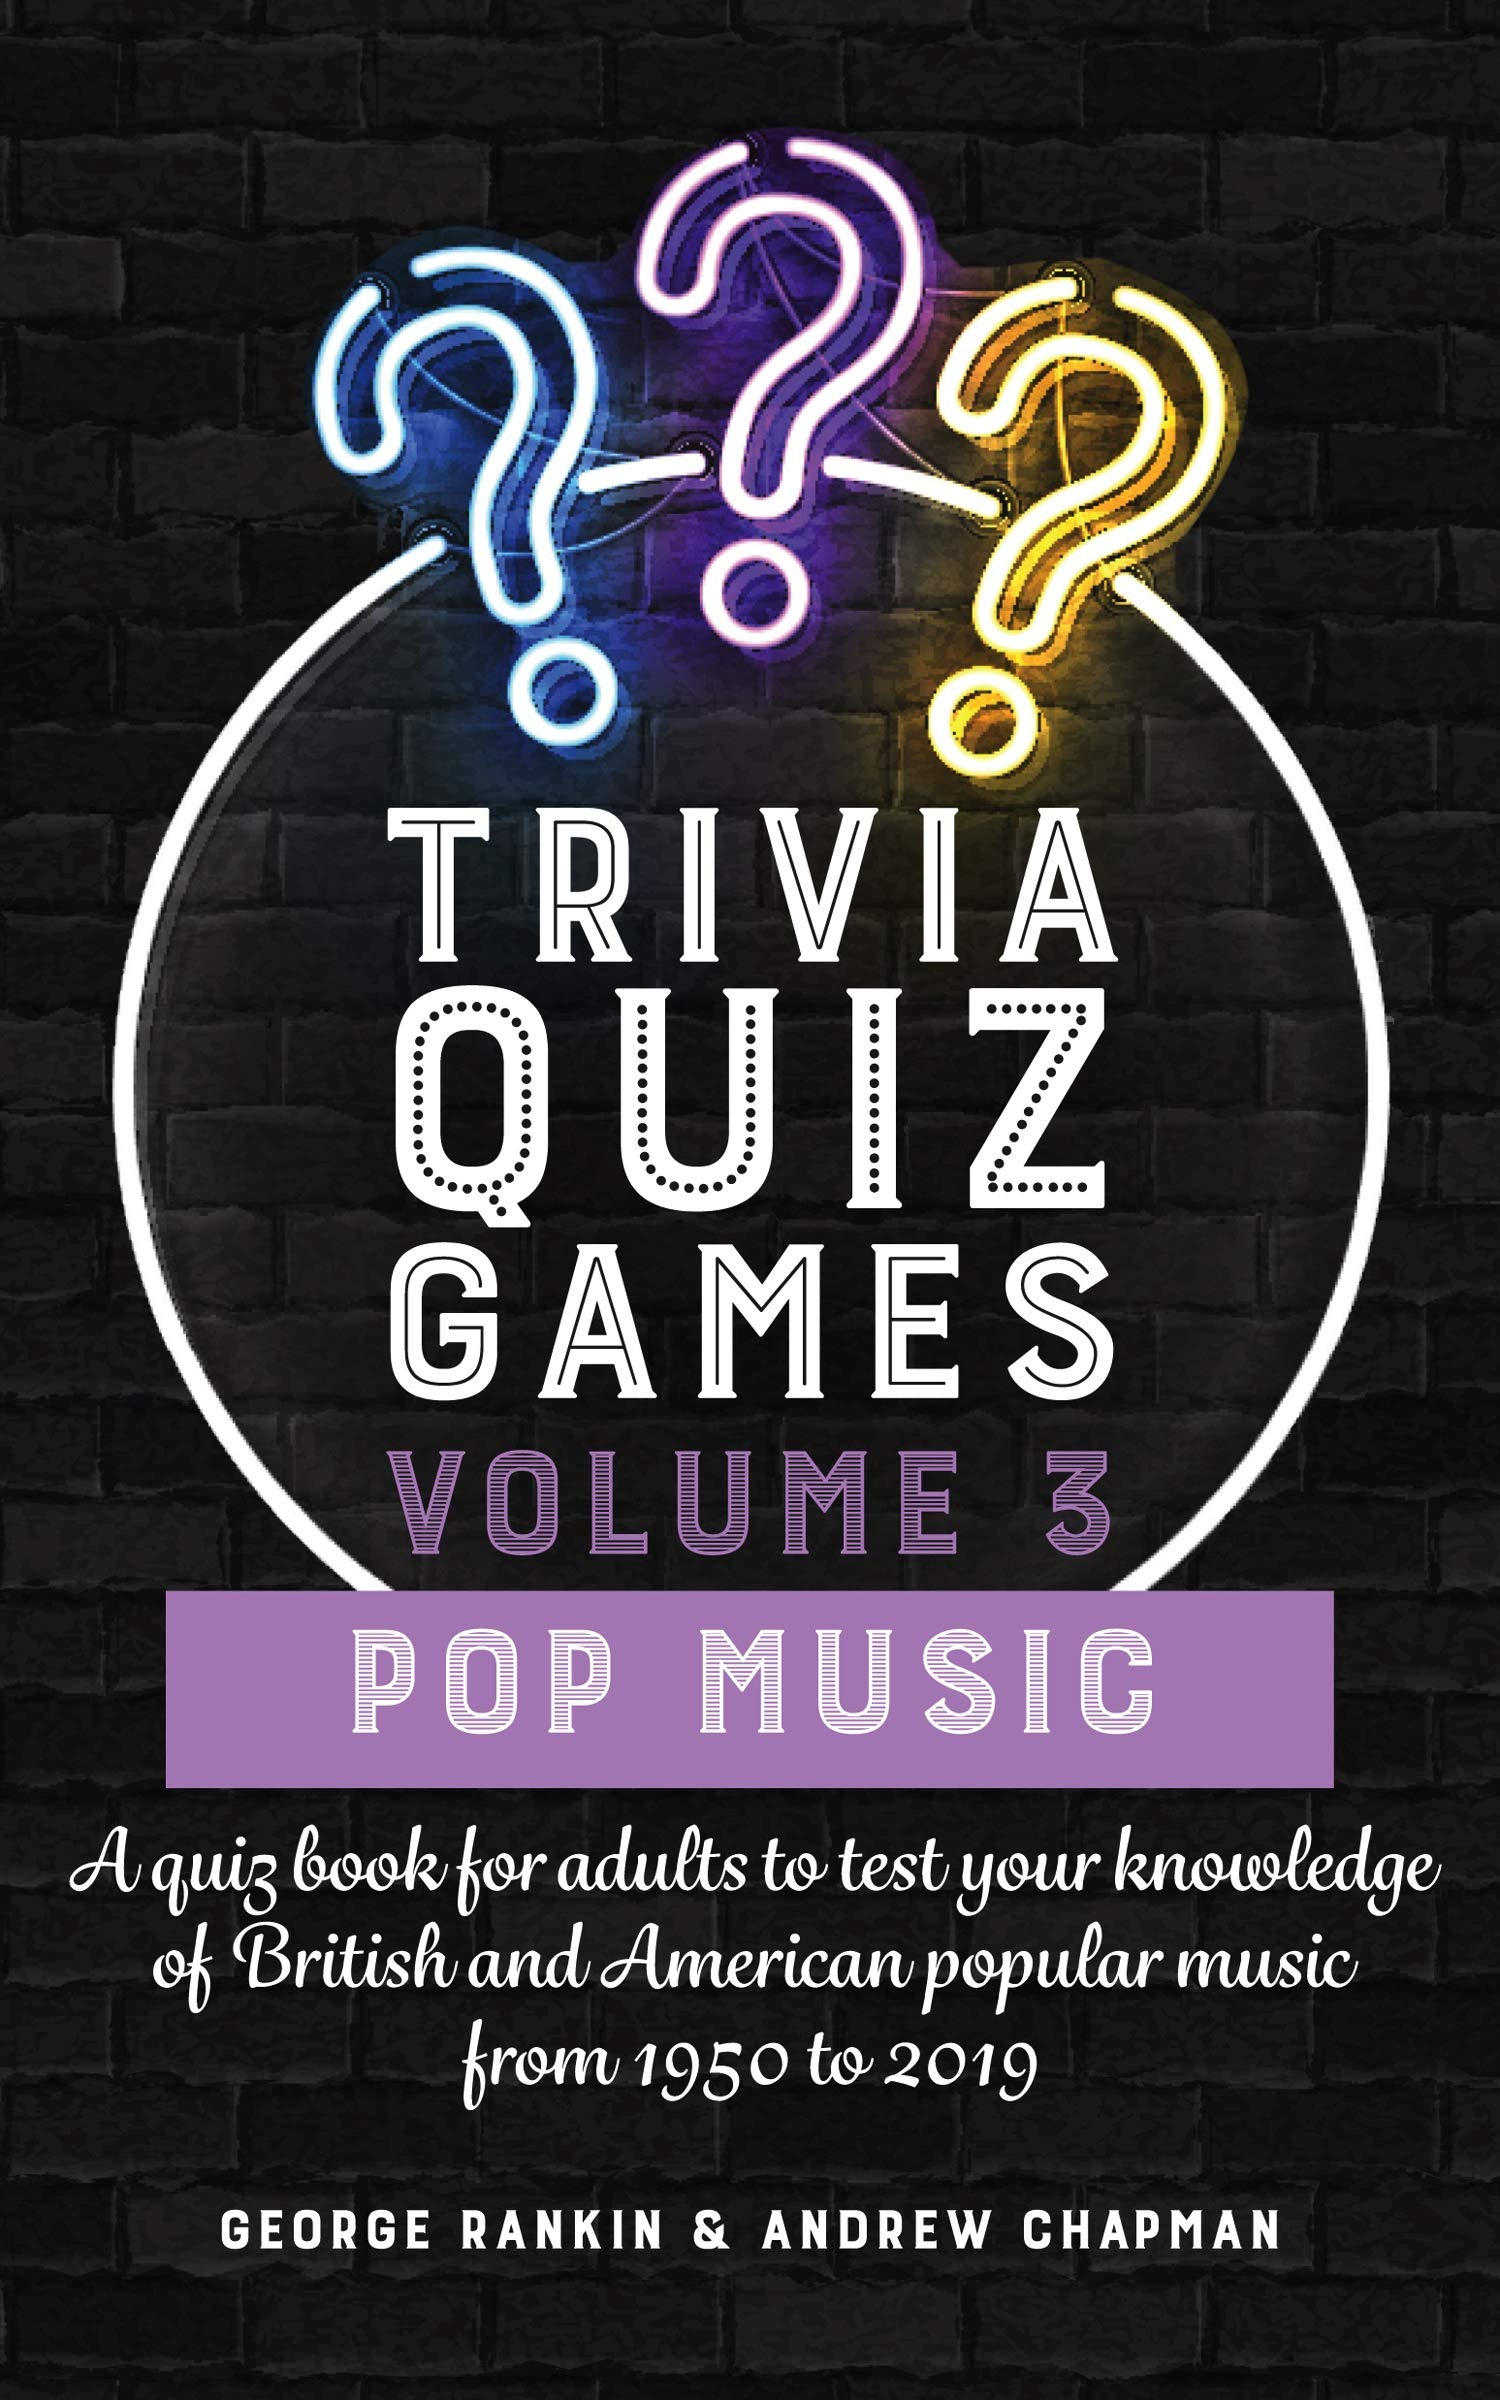 Trivia Quiz Games Volume 3: Pop Music: A quiz book for adults to test your knowledge of British and American popular music from 1950 to 2019